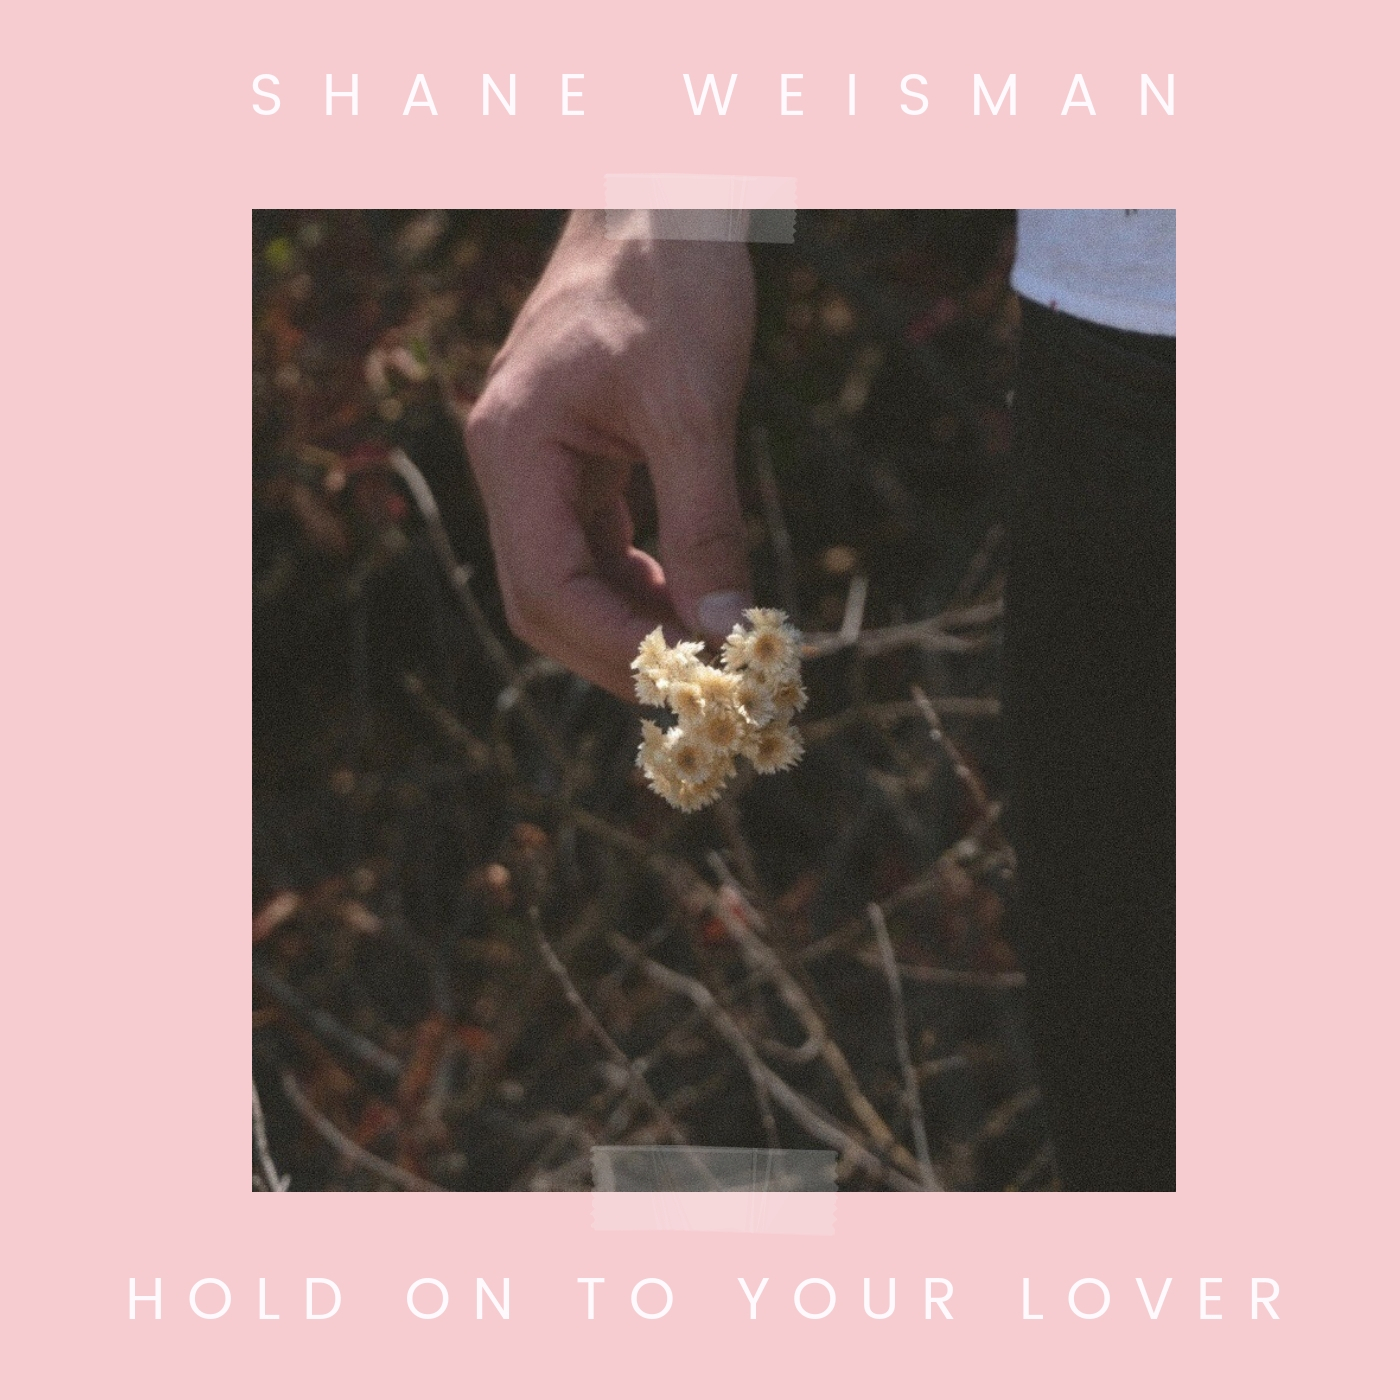 """HOLD ON TO YOUR LOVER"" - Release Date: February 15, 2019"